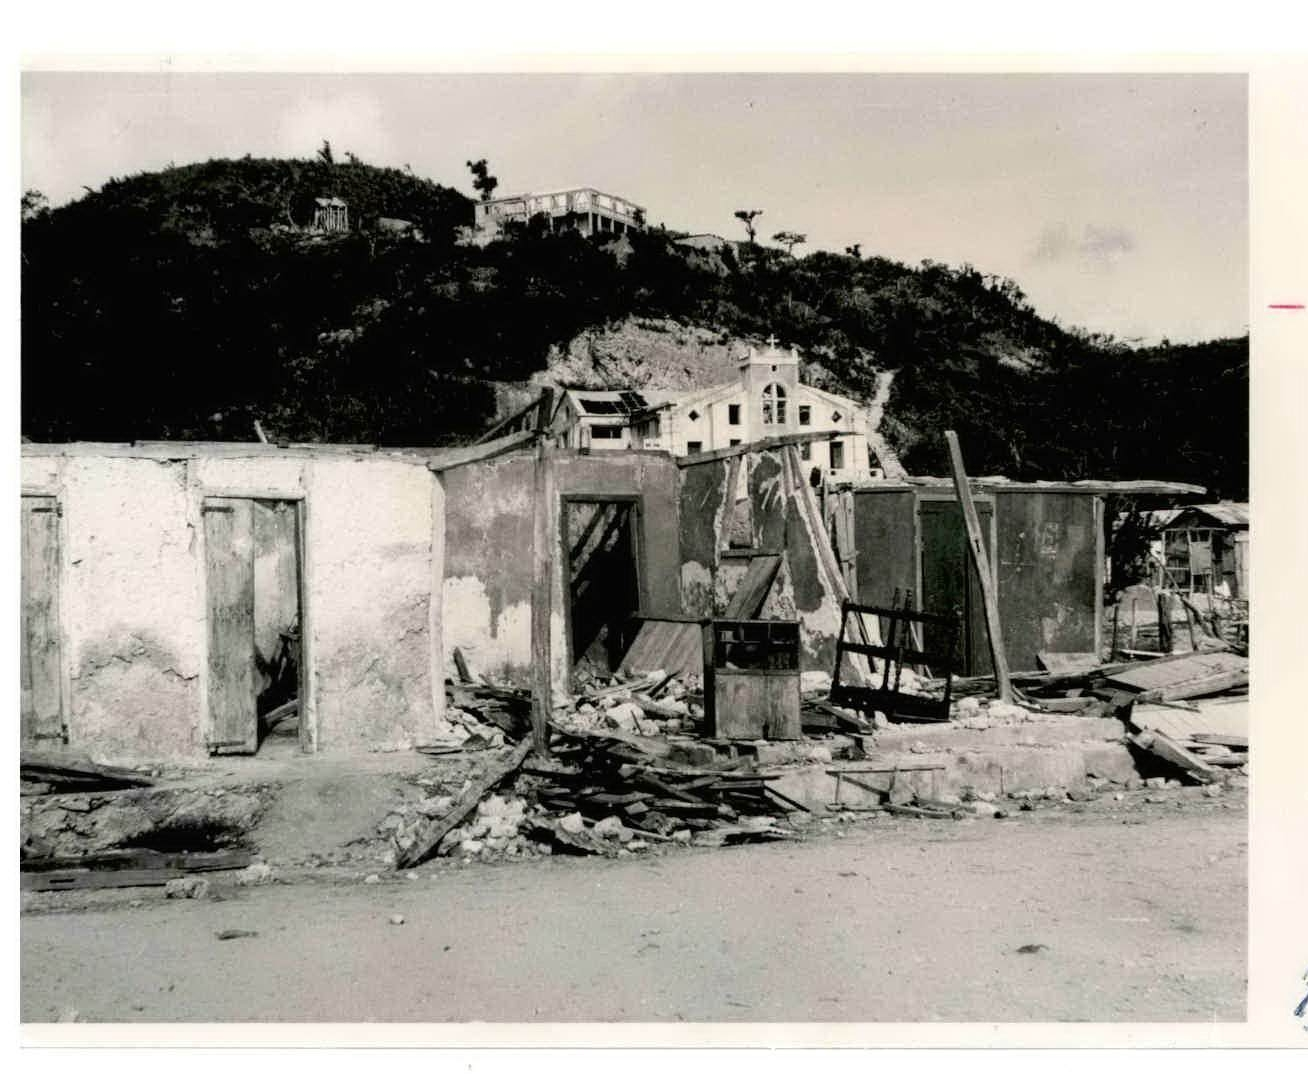 Homes destroyed by Hurricane Flora in Cotes de Fer, Haiti in 1962